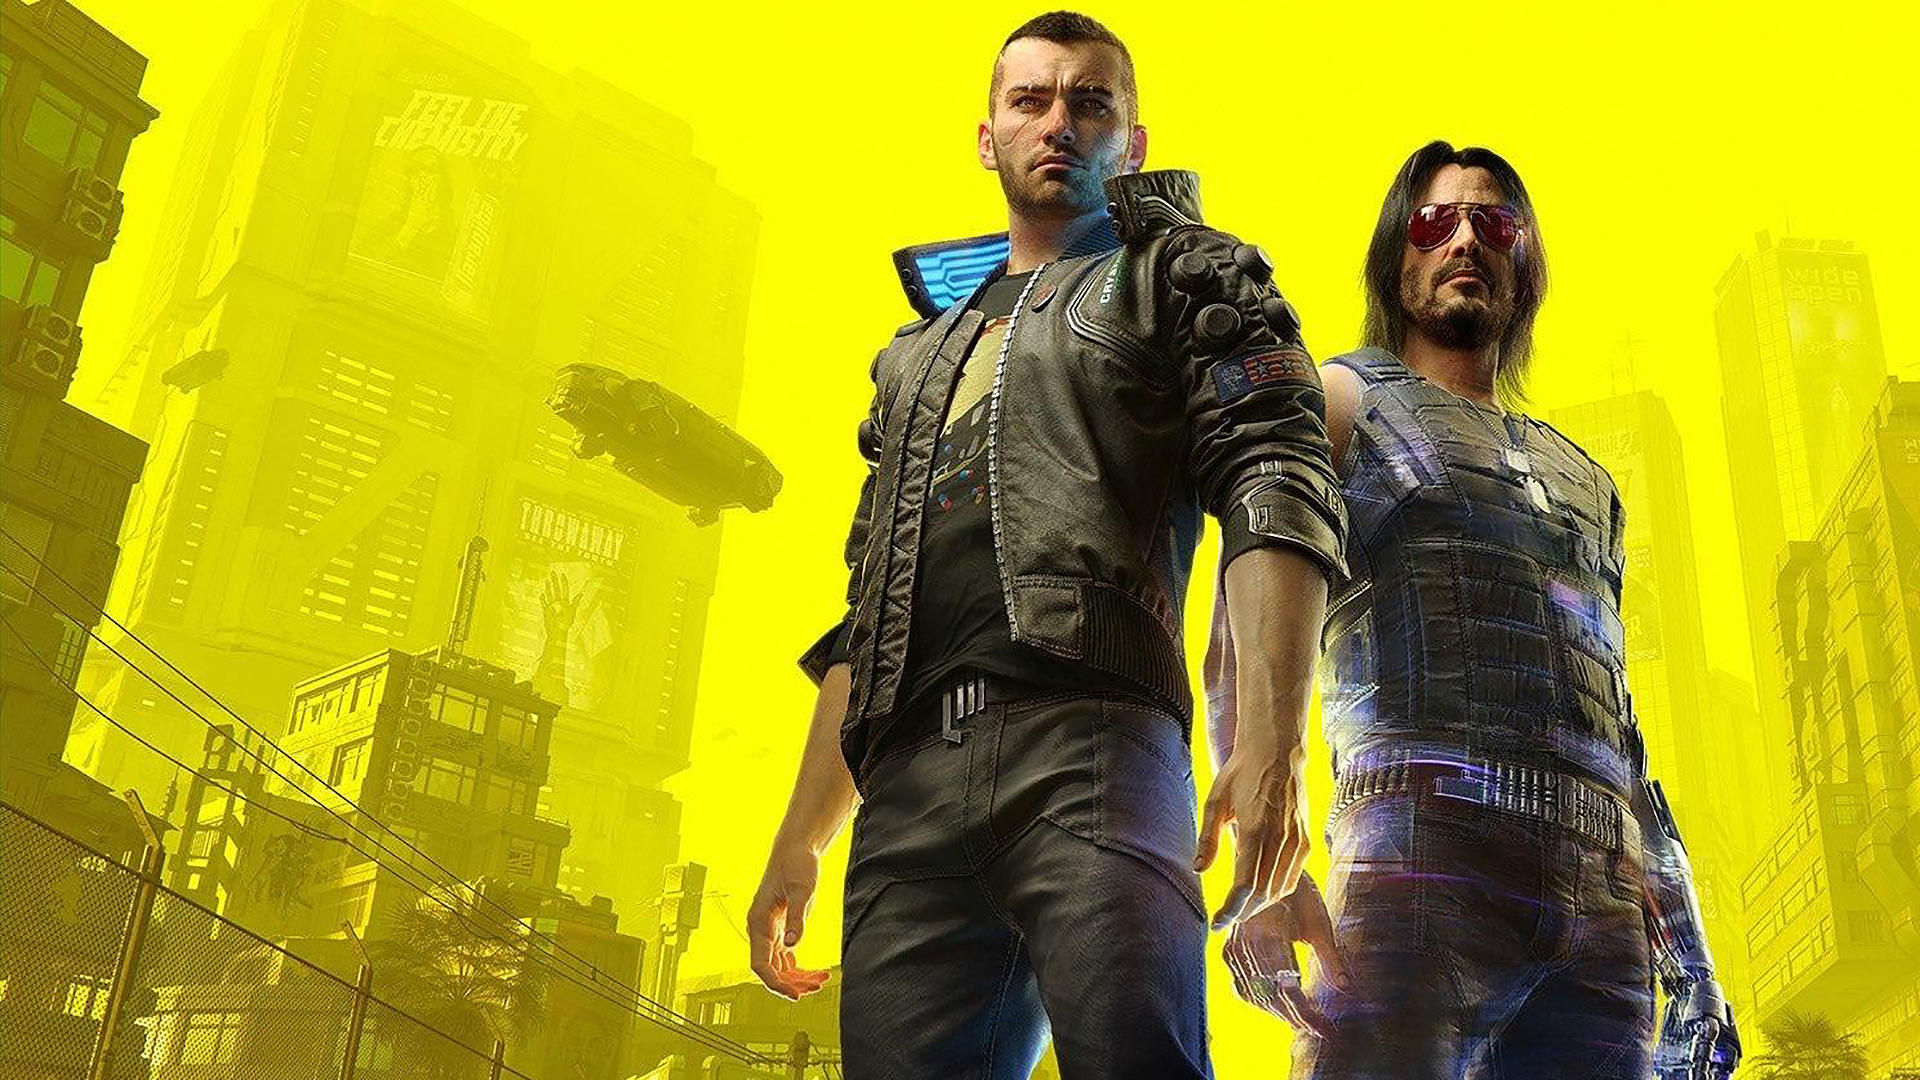 Cyberpunk 2077 Patch 1.05 Is Now Available On PC, How Much Difference Have These Updates Actually Made?